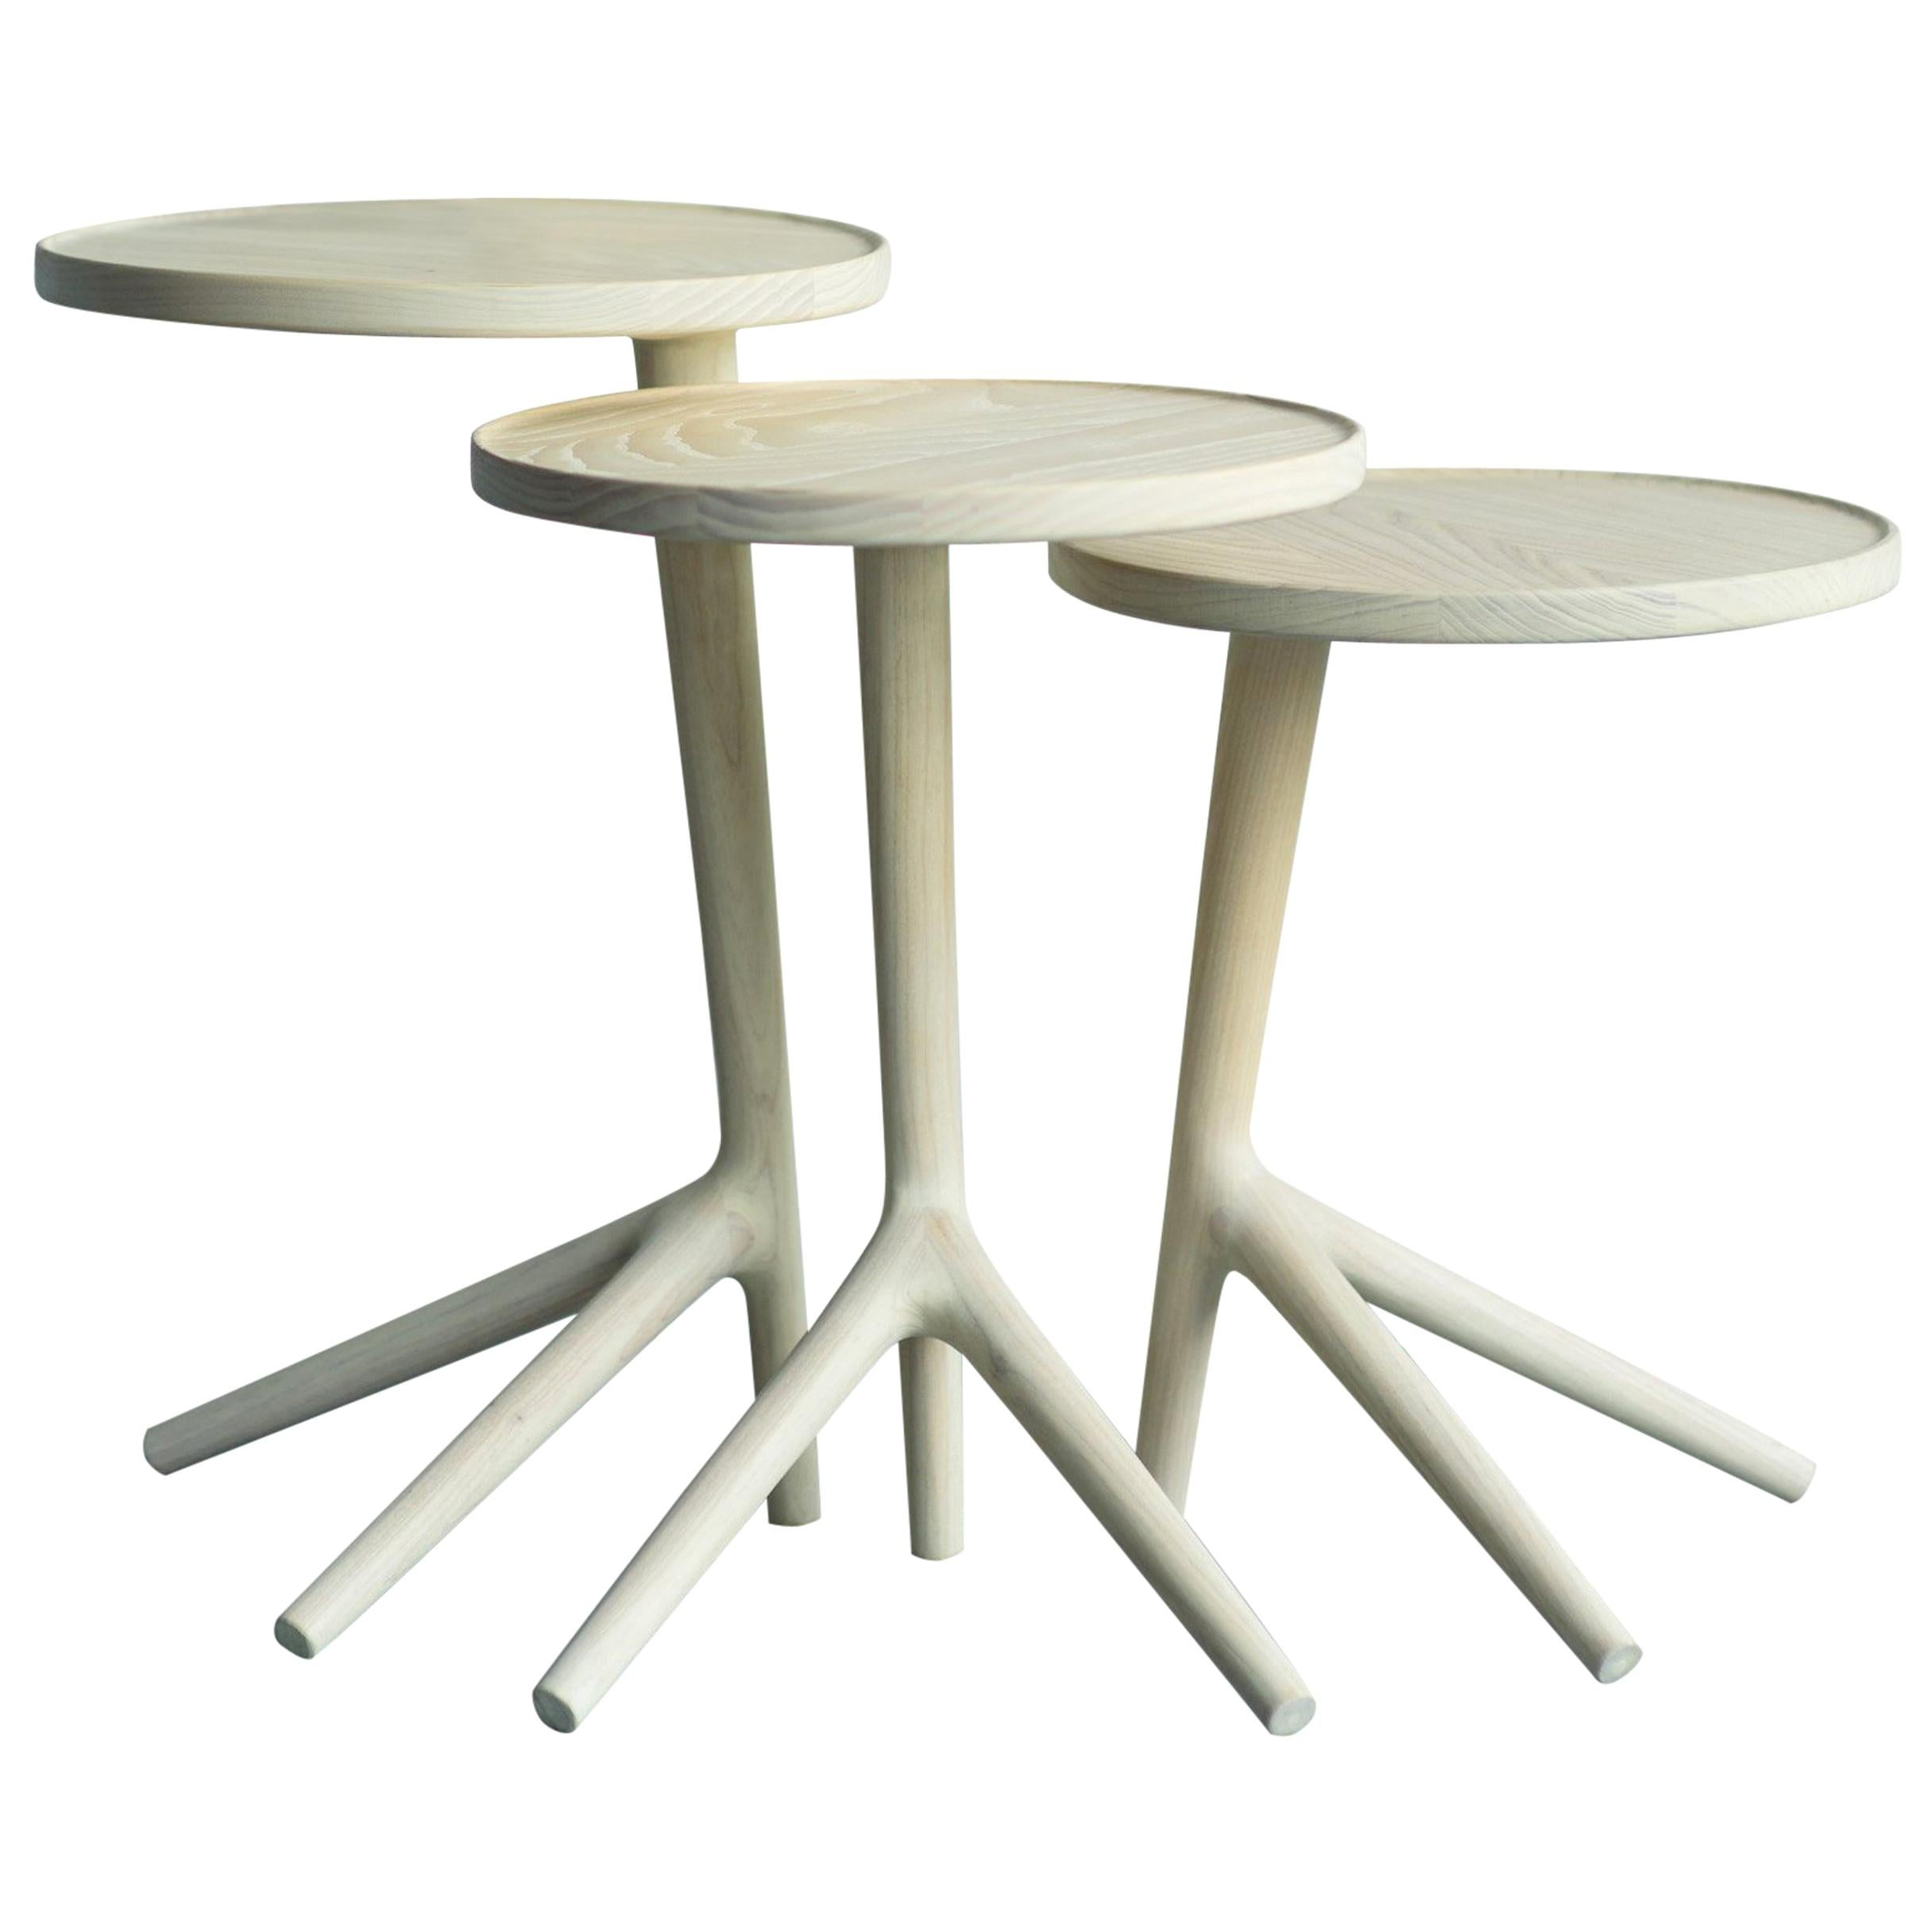 Nesting Cocktail Tables - White Ash handmade by Fernweh Woodworking Set of Three